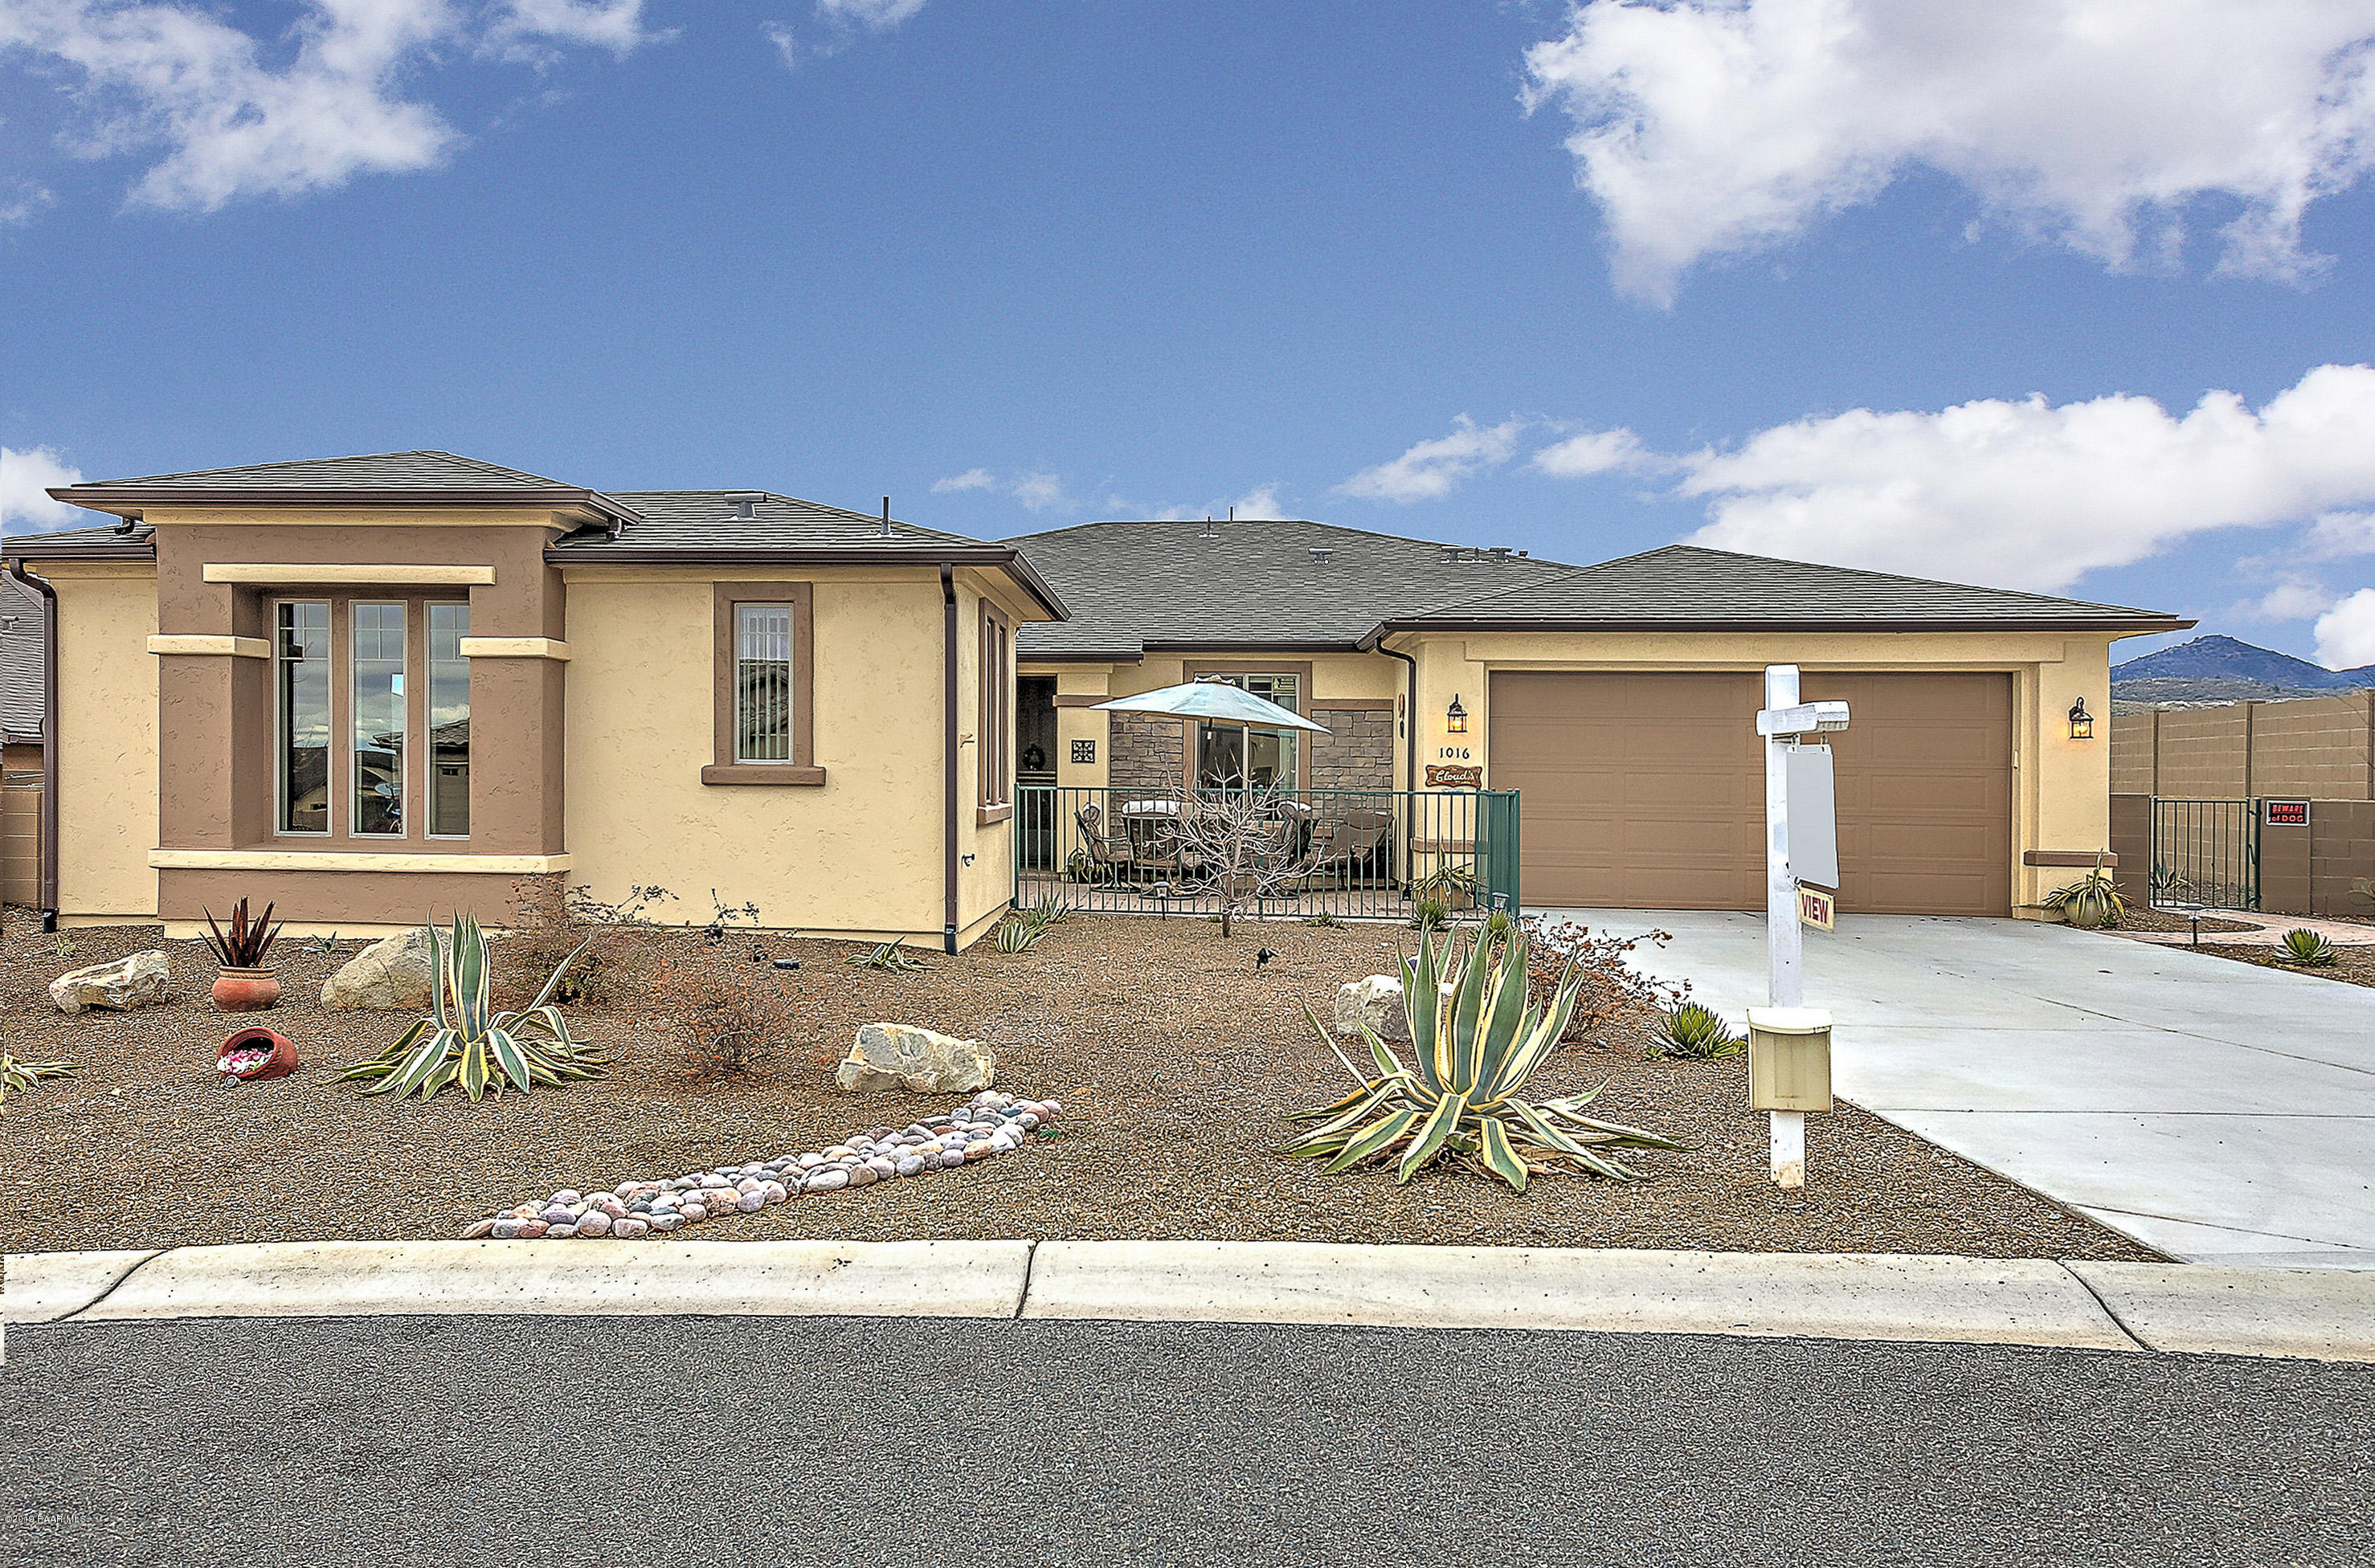 1016 N Wide Open Trail, Prescott Valley, Arizona